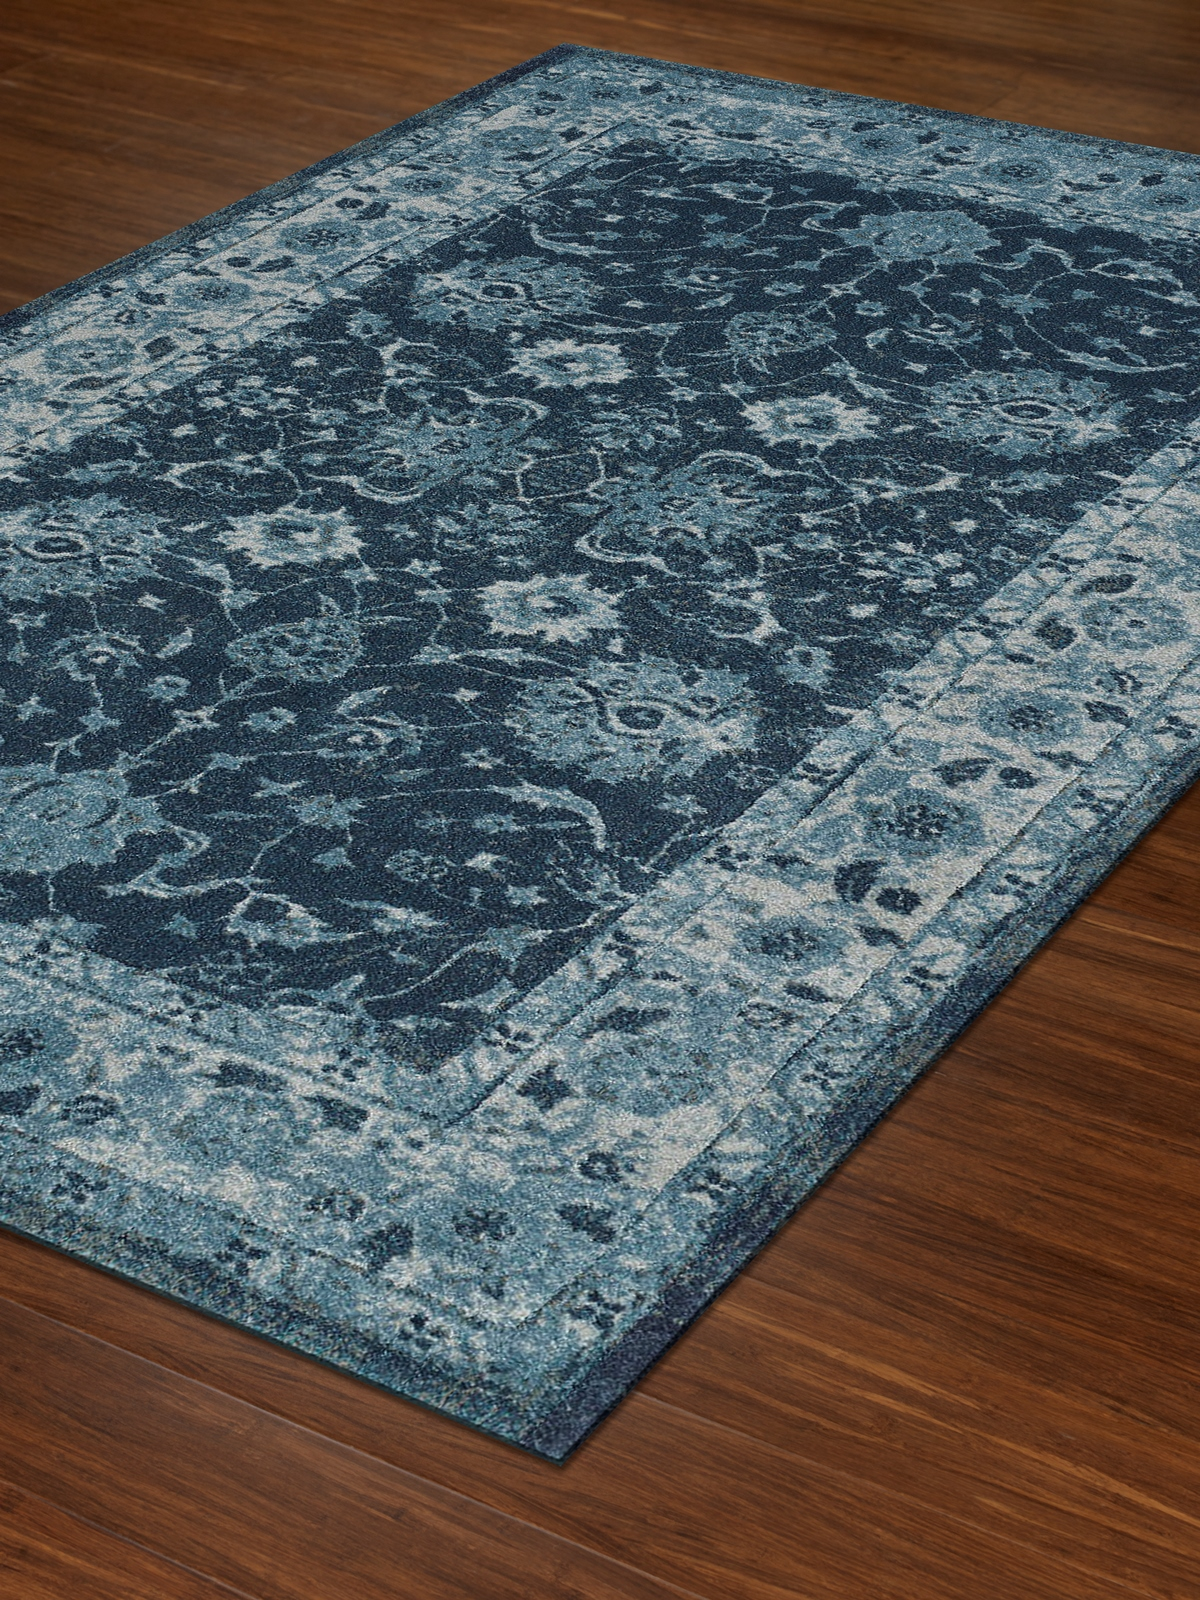 Dalyn Geneva Gv4448 Teal Area Rug Free Shipping